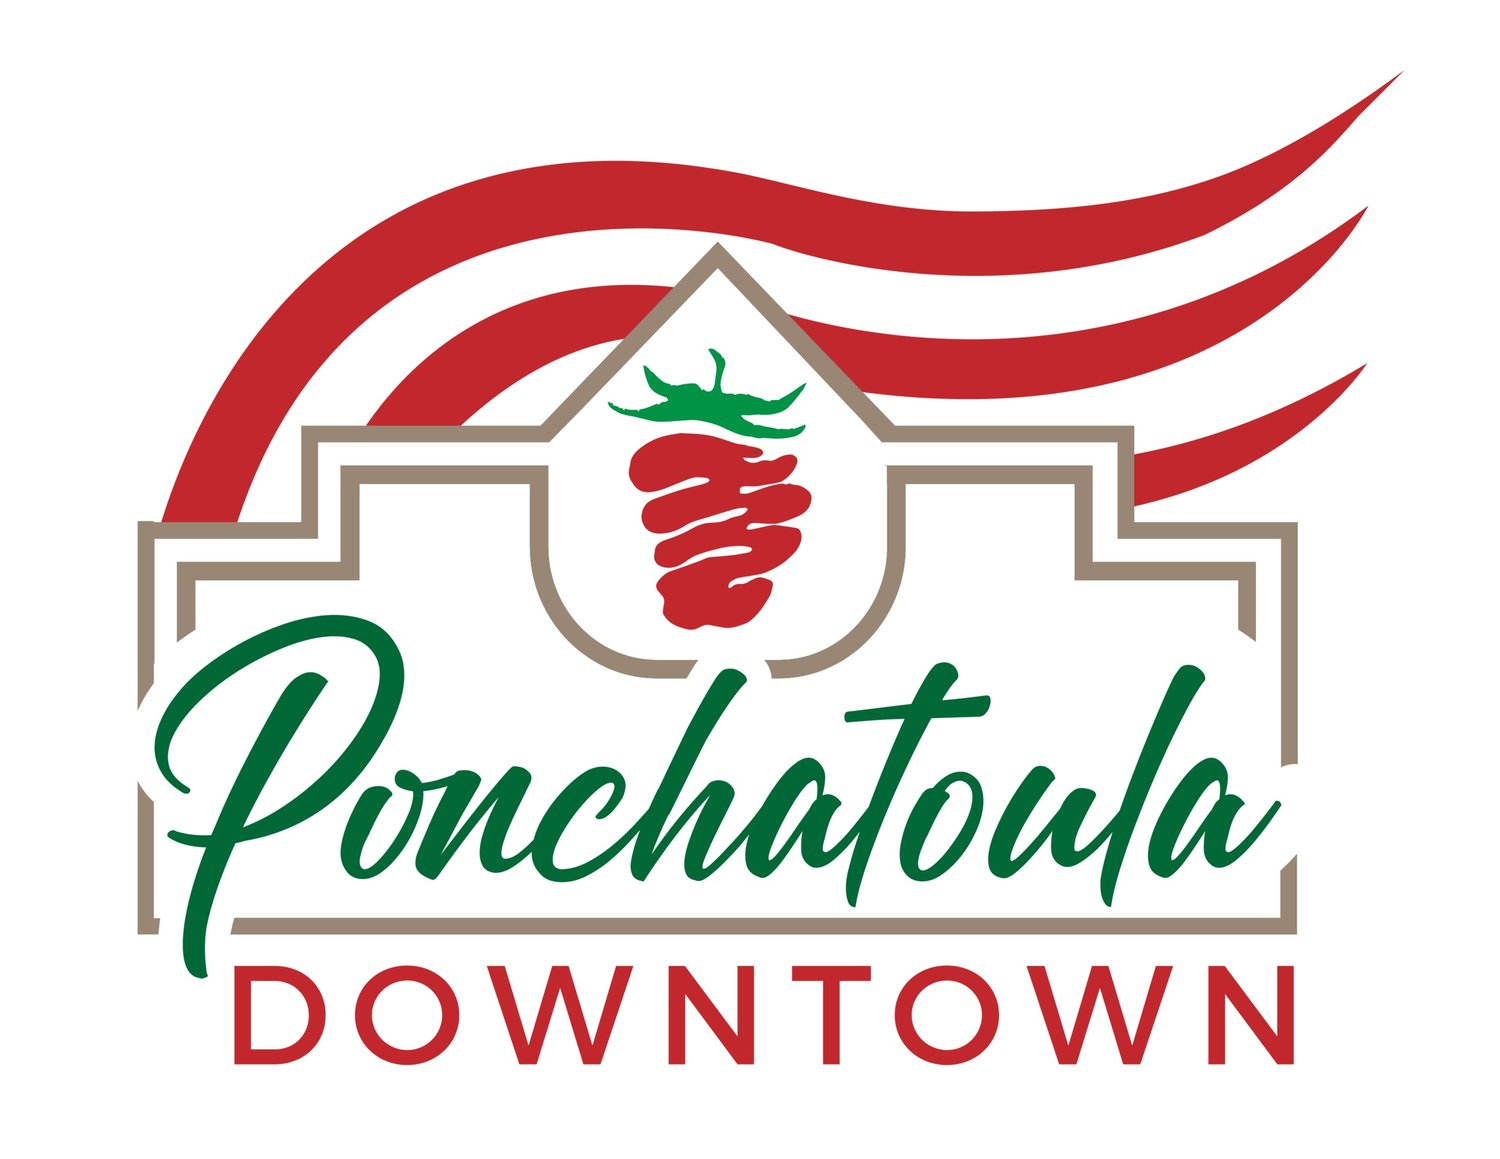 Downtown Ponchatoula Revitalization Program